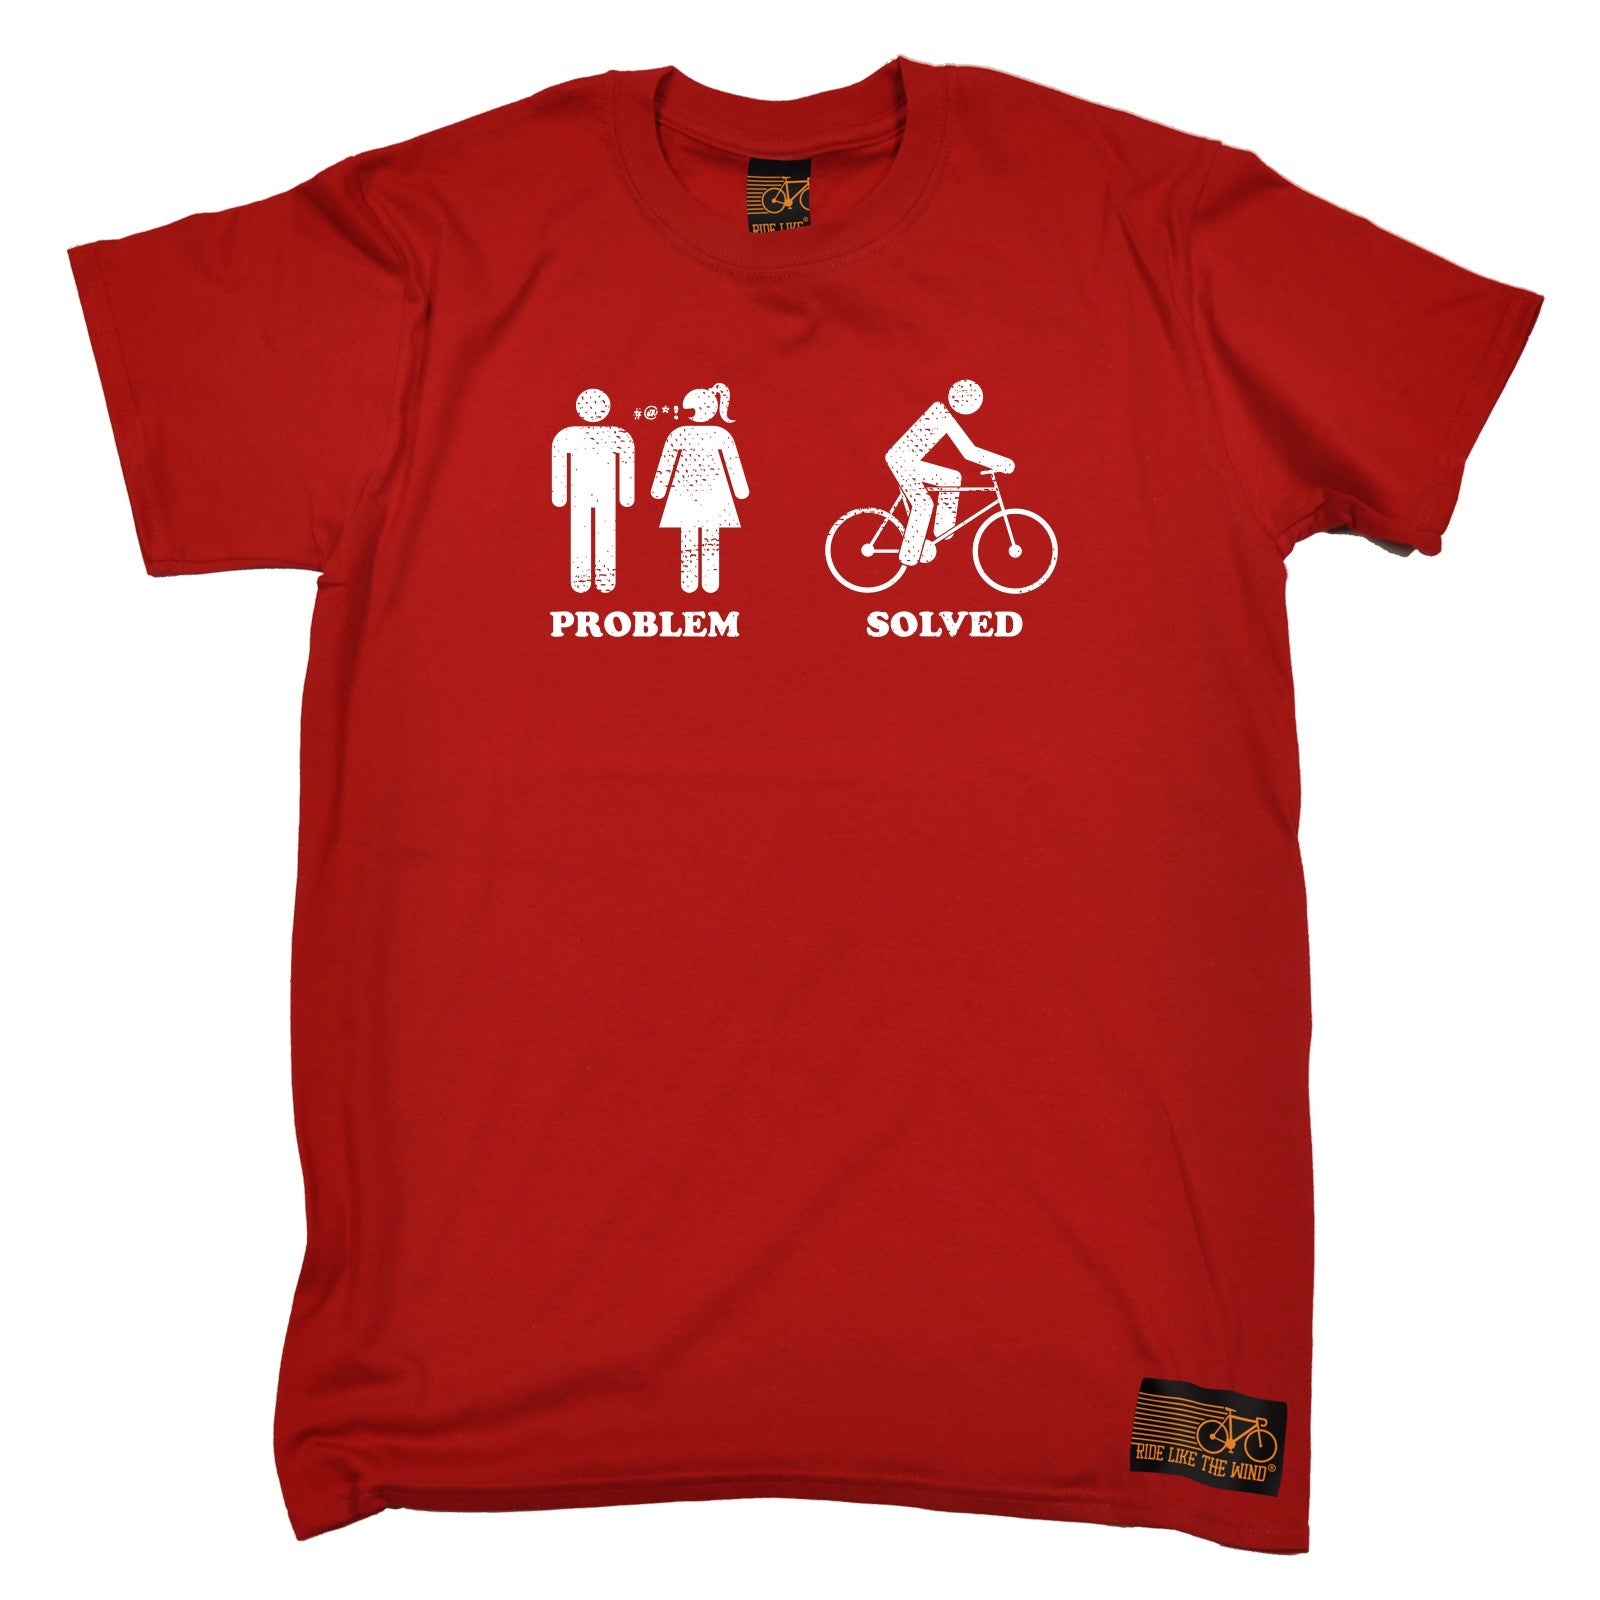 Problem Solved Cycling T Shirt Top Cycle Jersey Joke Funny